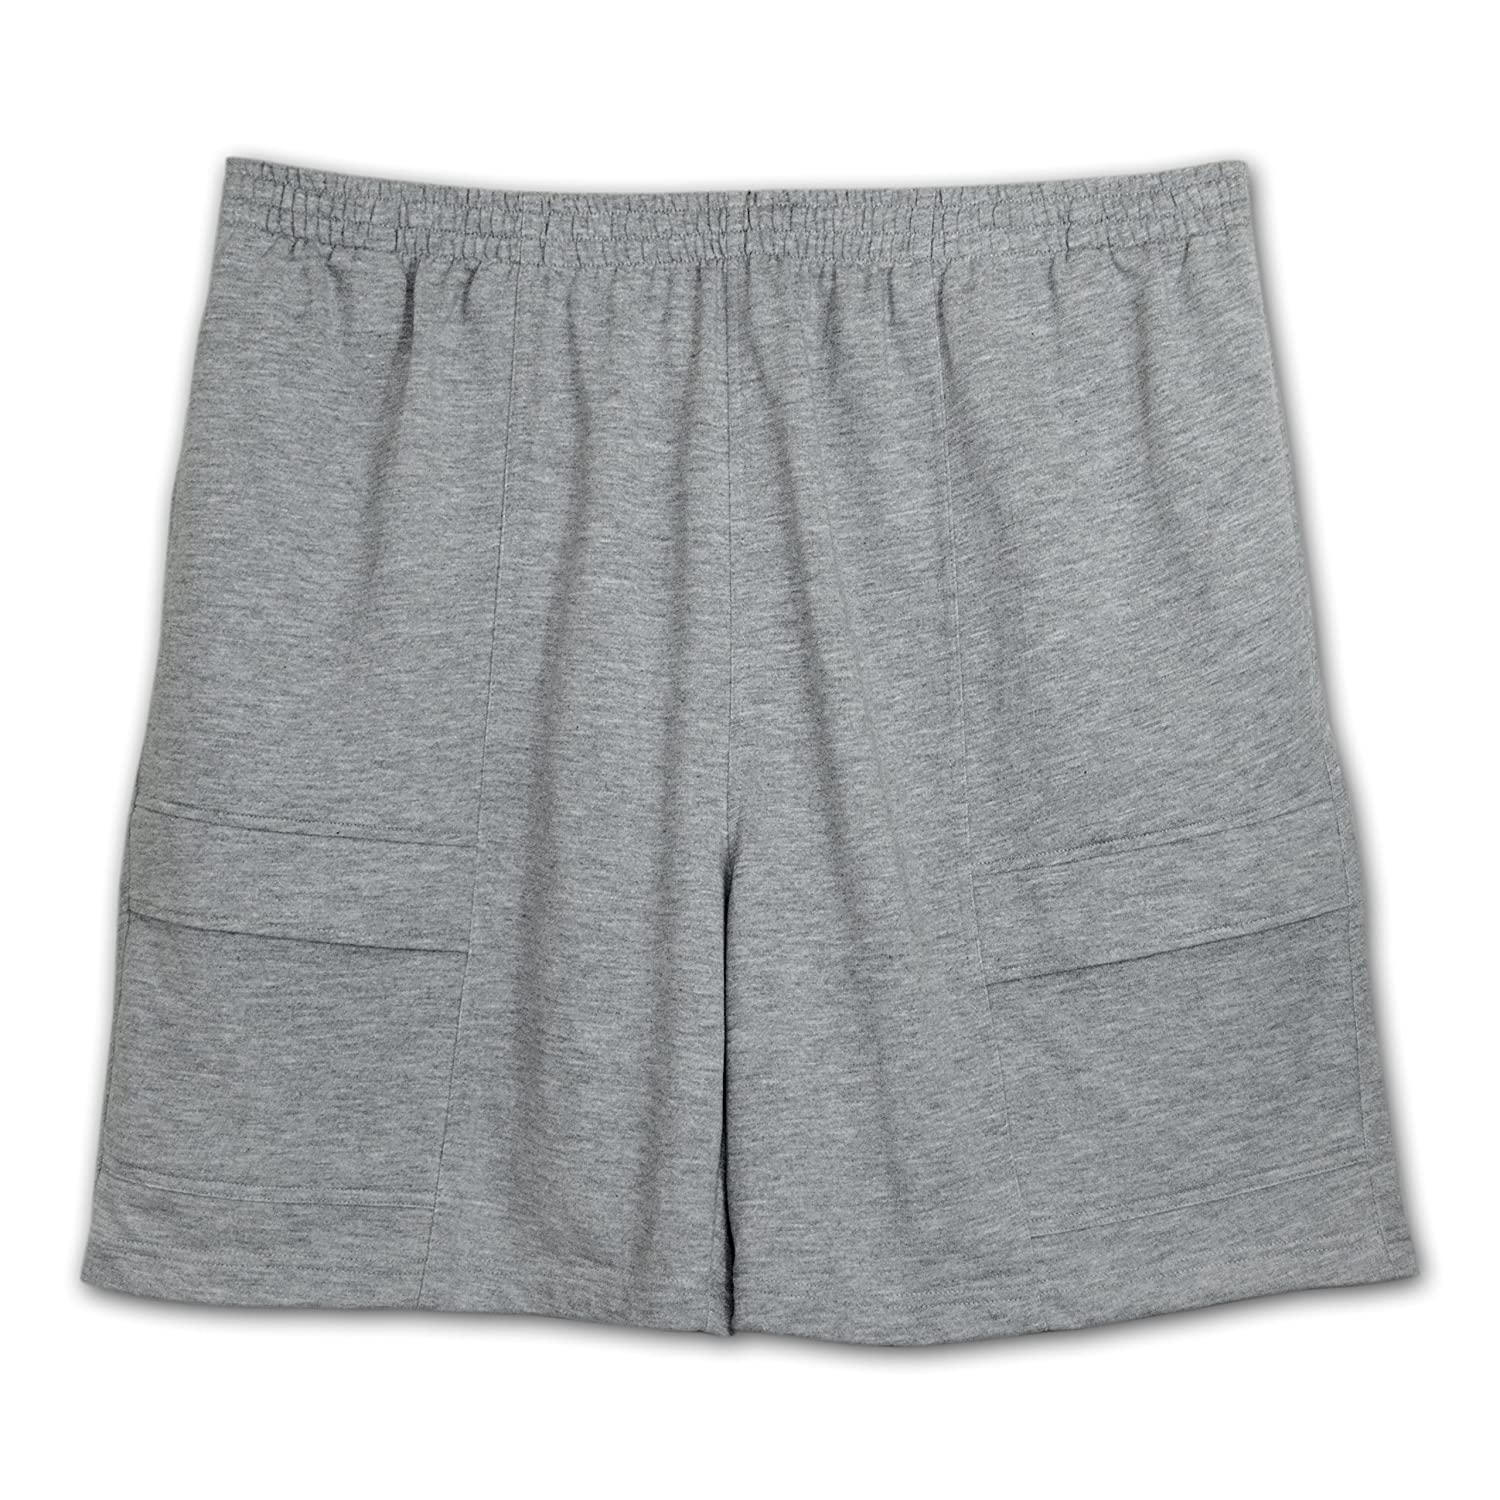 0a450c48b8 Amazon.com: LD Sport Big and Tall Fully Elastic Terry Cargo Shorts: Clothing